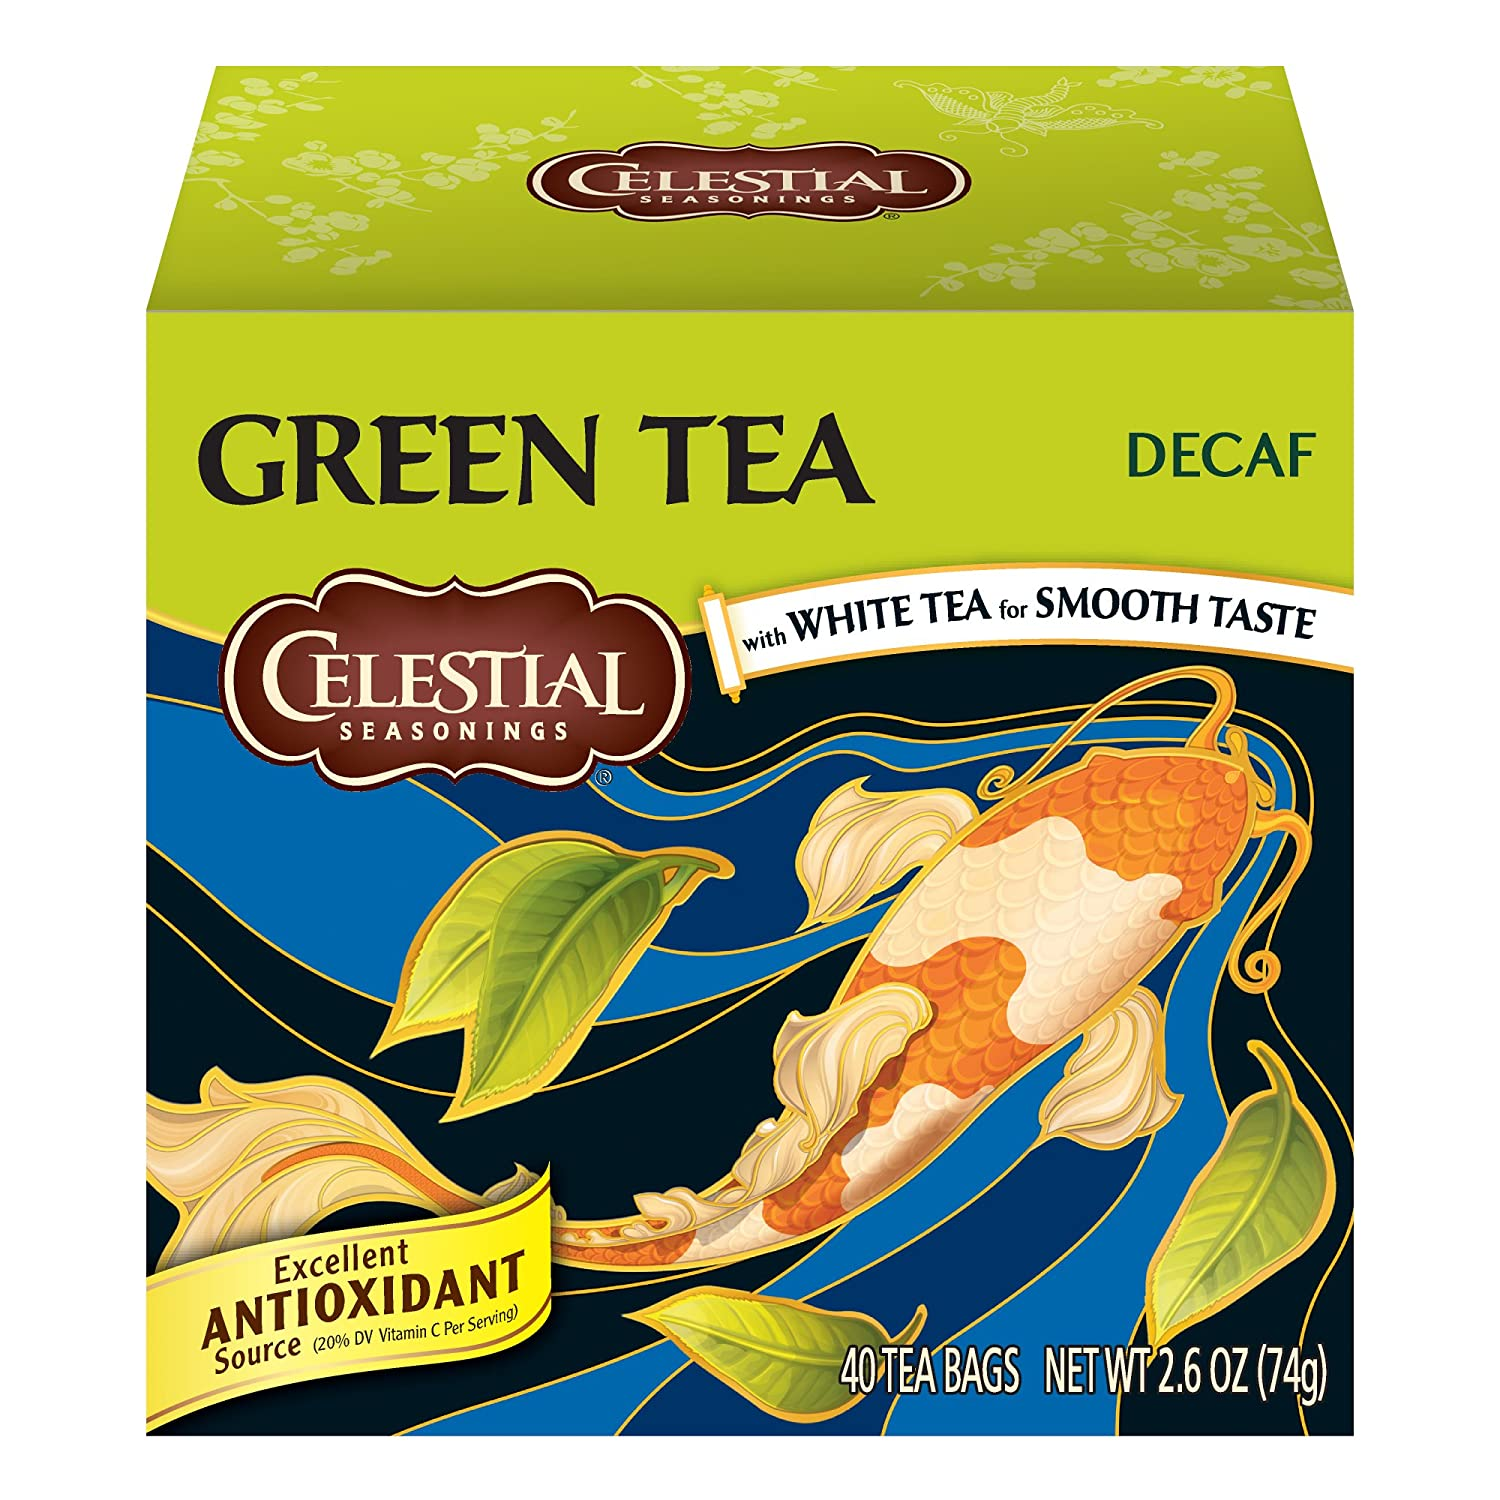 Celestial Seasonings Green Tea, Decaf, 40 Count